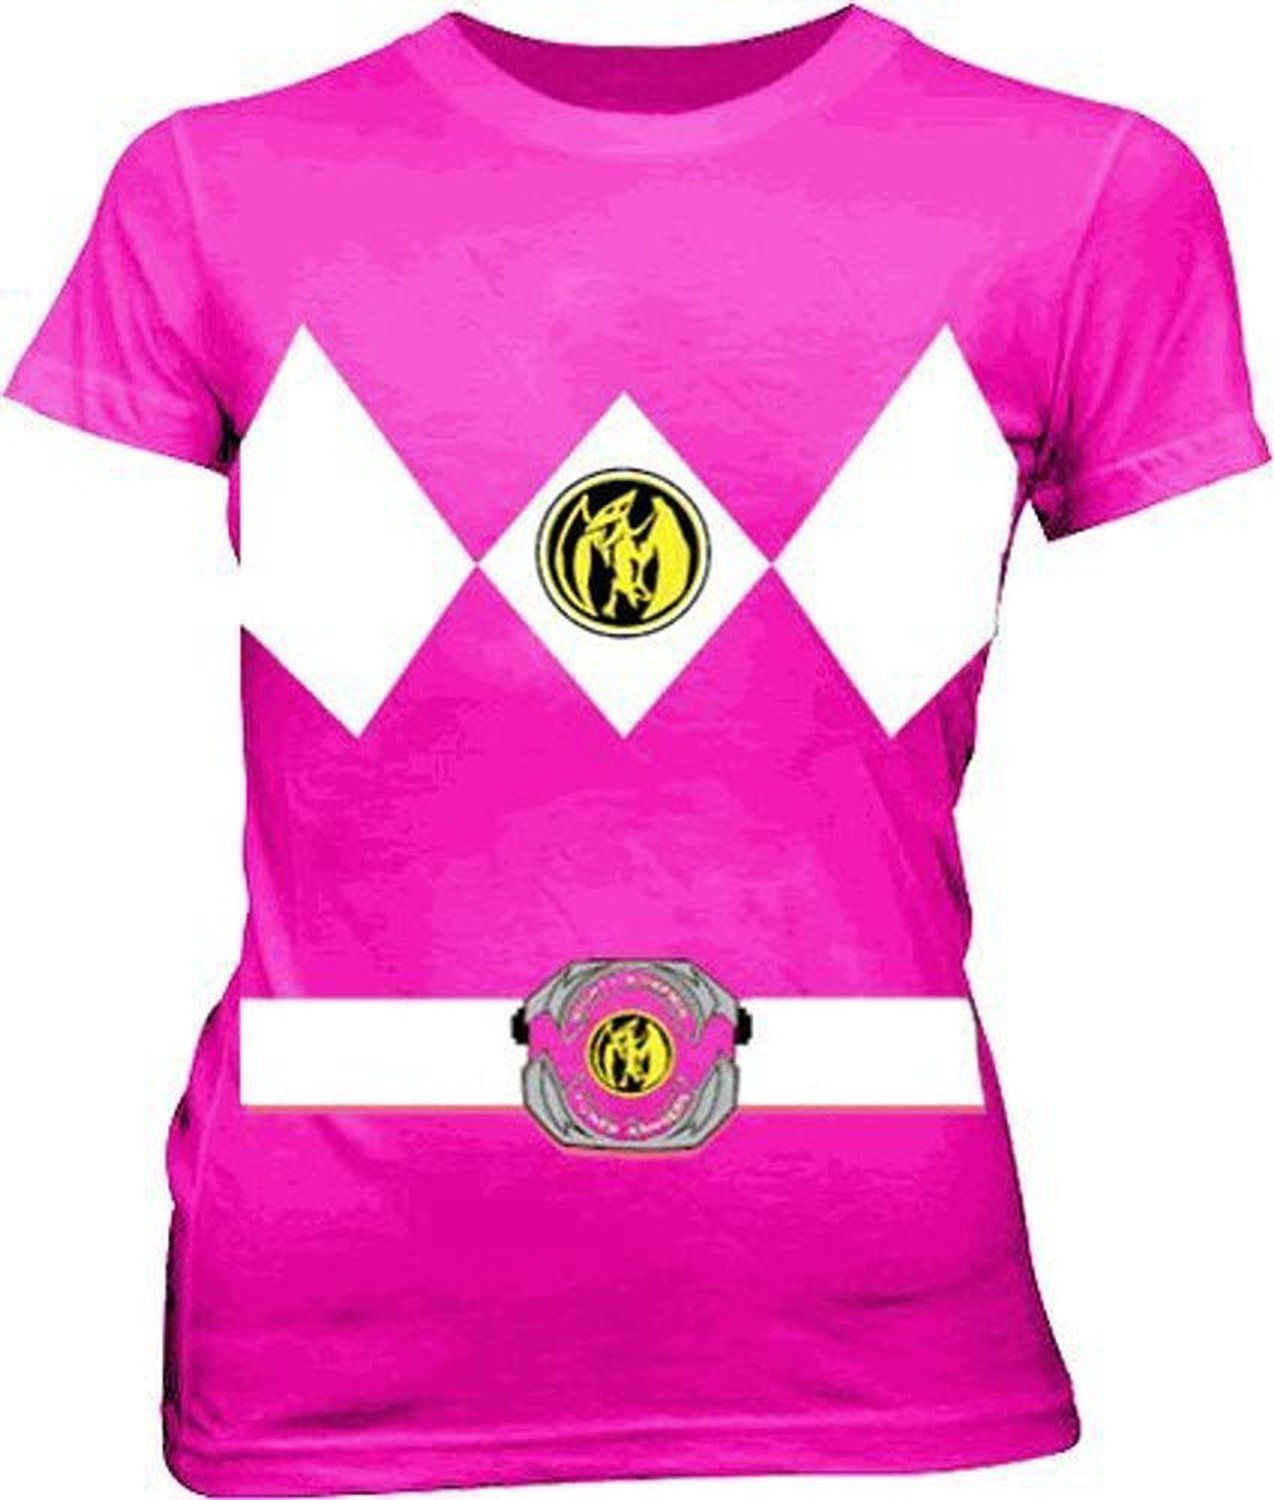 5700301afb5 Amazon.com  Power Rangers Pink Costume Juniors Fuschia T-shirt Tee  Clothing